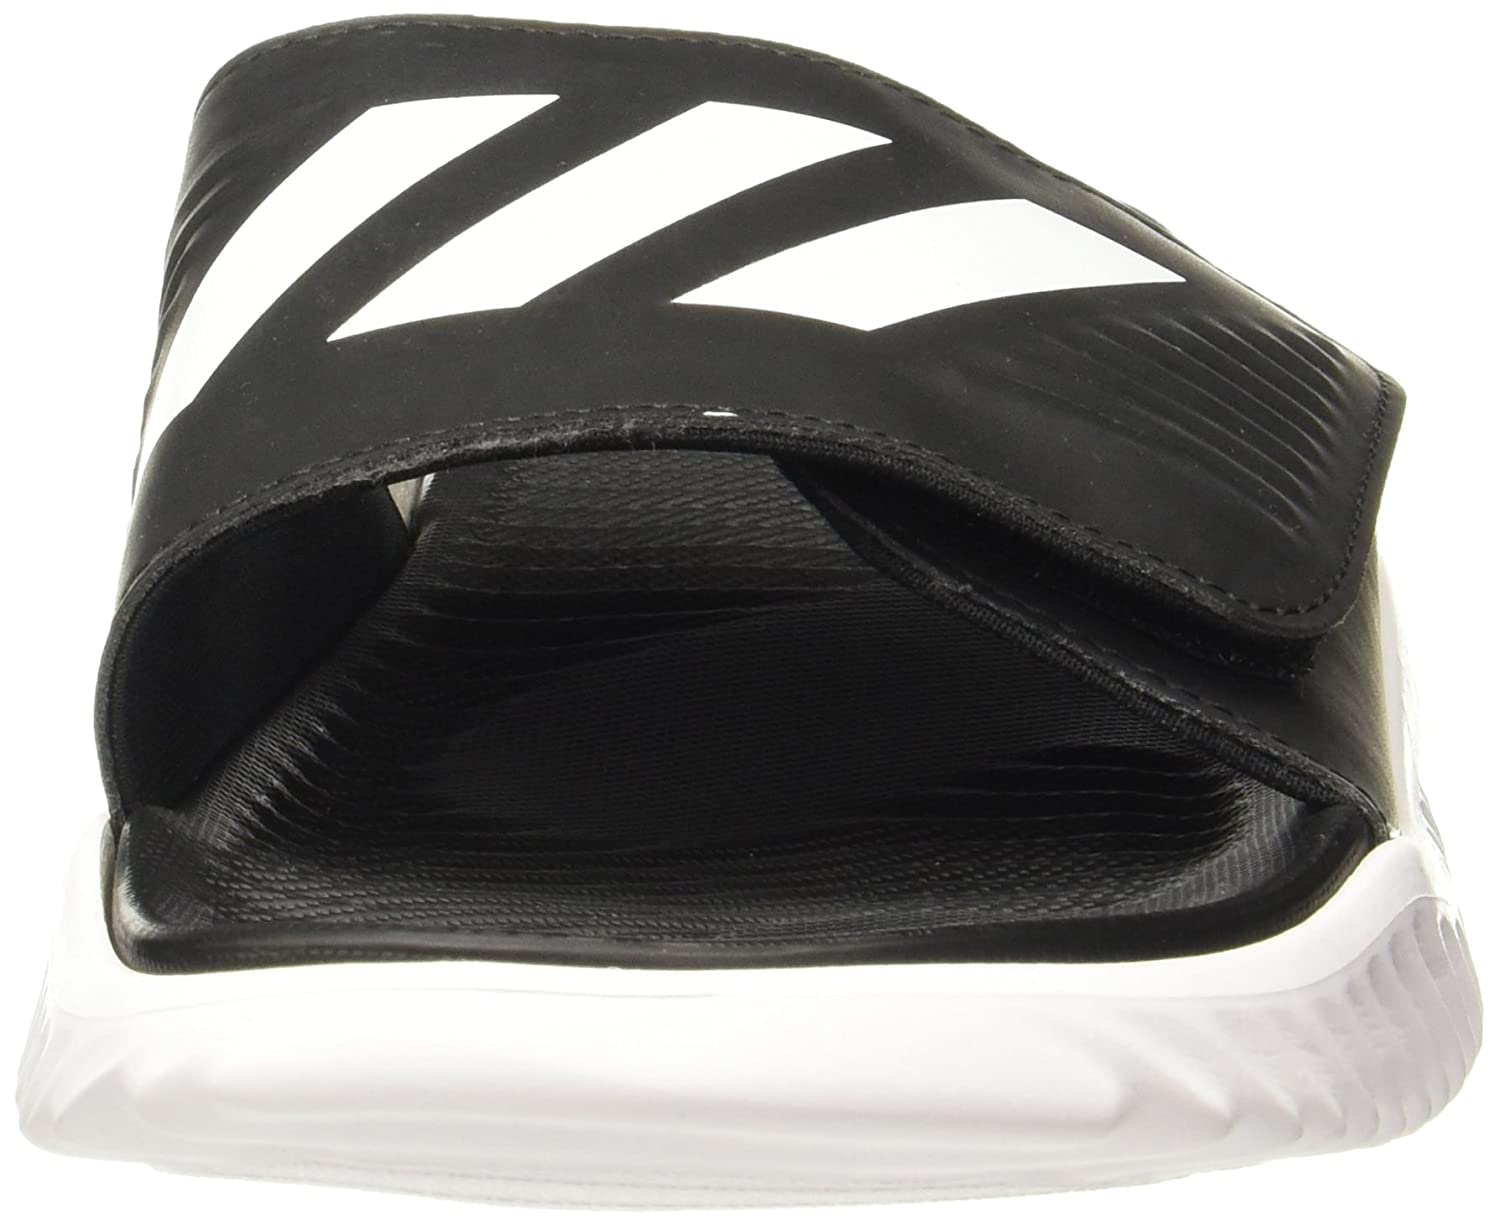 a51ccccb65e Adidas Men s Alphabounce Slide Ftwwht Cblack Ftwwht Flip-Flops - 11 UK India  (46 EU)  Buy Online at Low Prices in India - Amazon.in